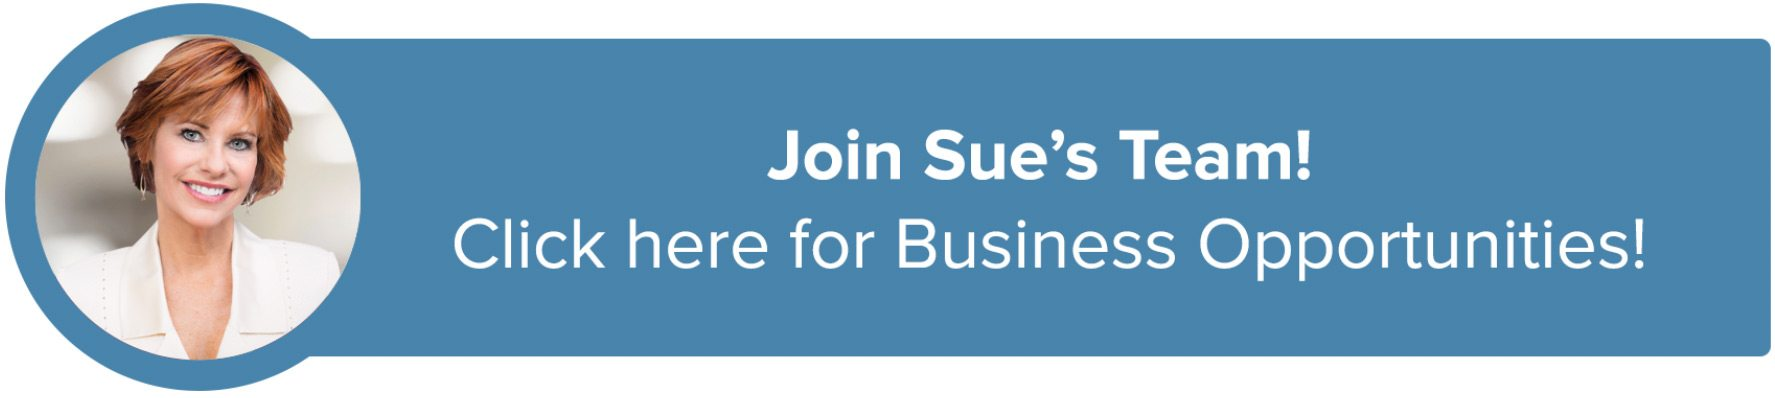 Sue Fries - Join Sue's Team!